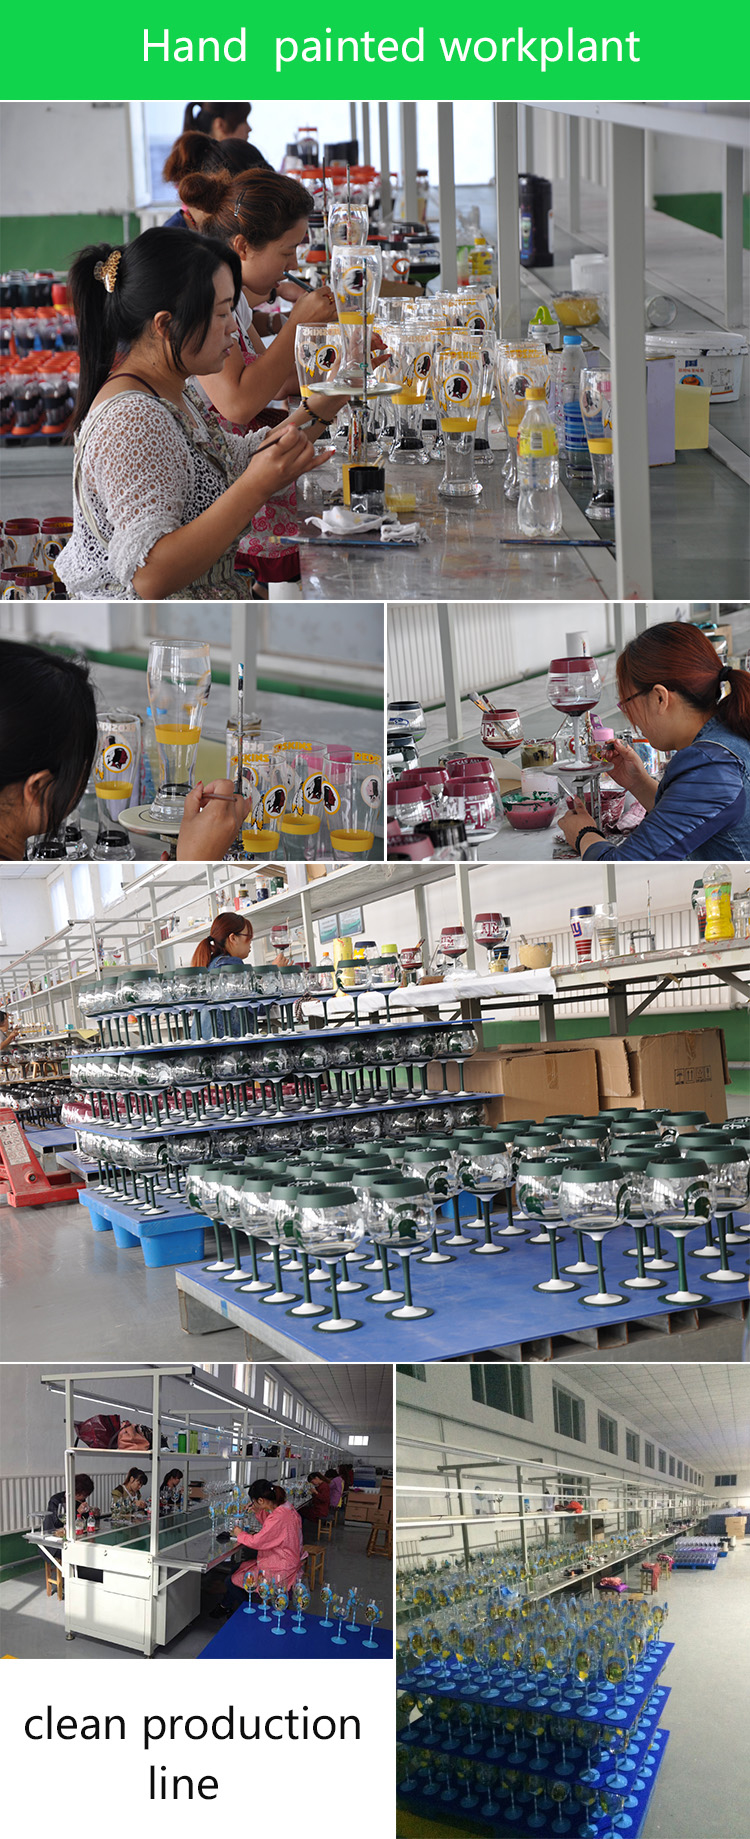 glassware suppliers,processing equipment,china production technology,hand painted workplant,Plating production process